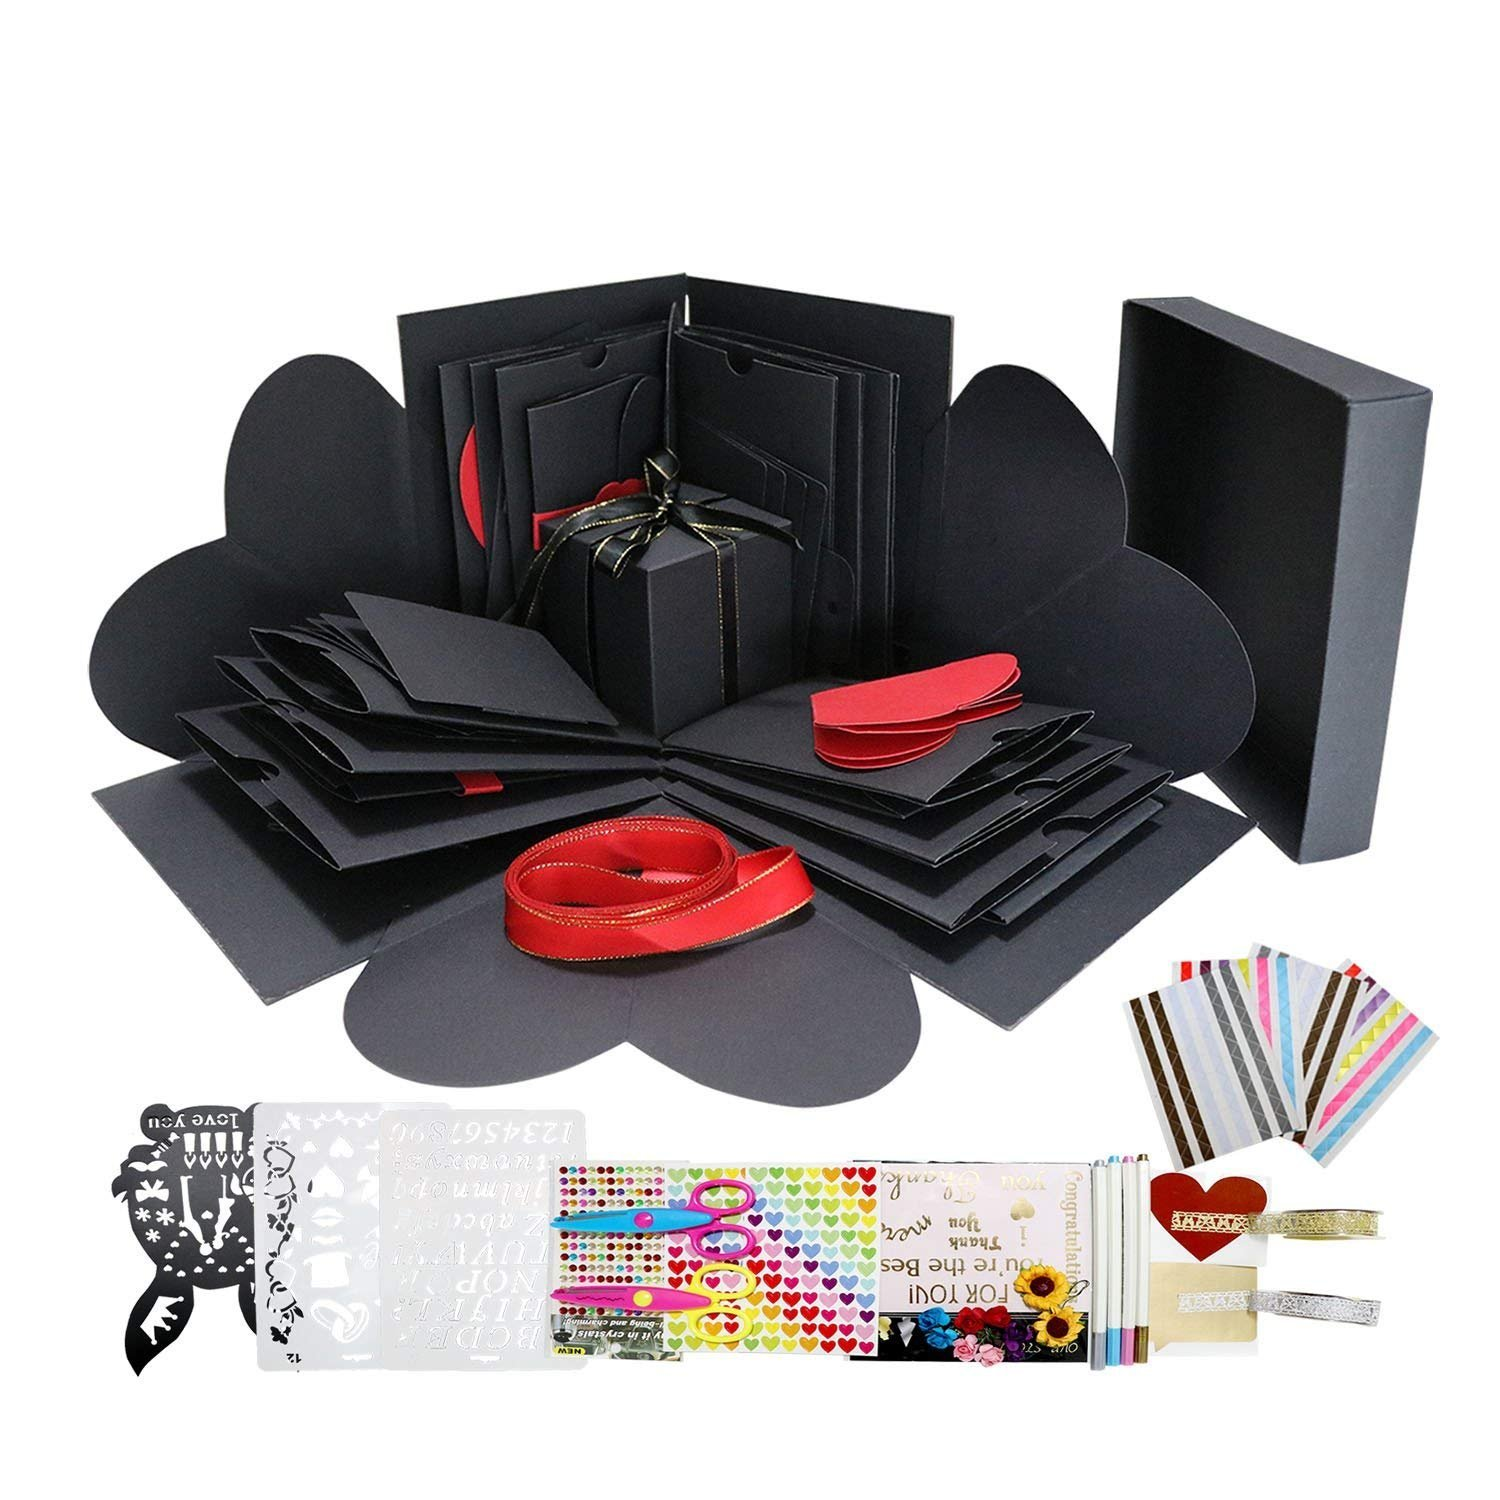 Explosion Box Scrapbook DIY Photo Album with 12 Funny Cards and 15 Kinds of DIY Accessories Kit Birthday Anniversary Valentine Wedding Gift (Black with White Box) WIMI 4336978041